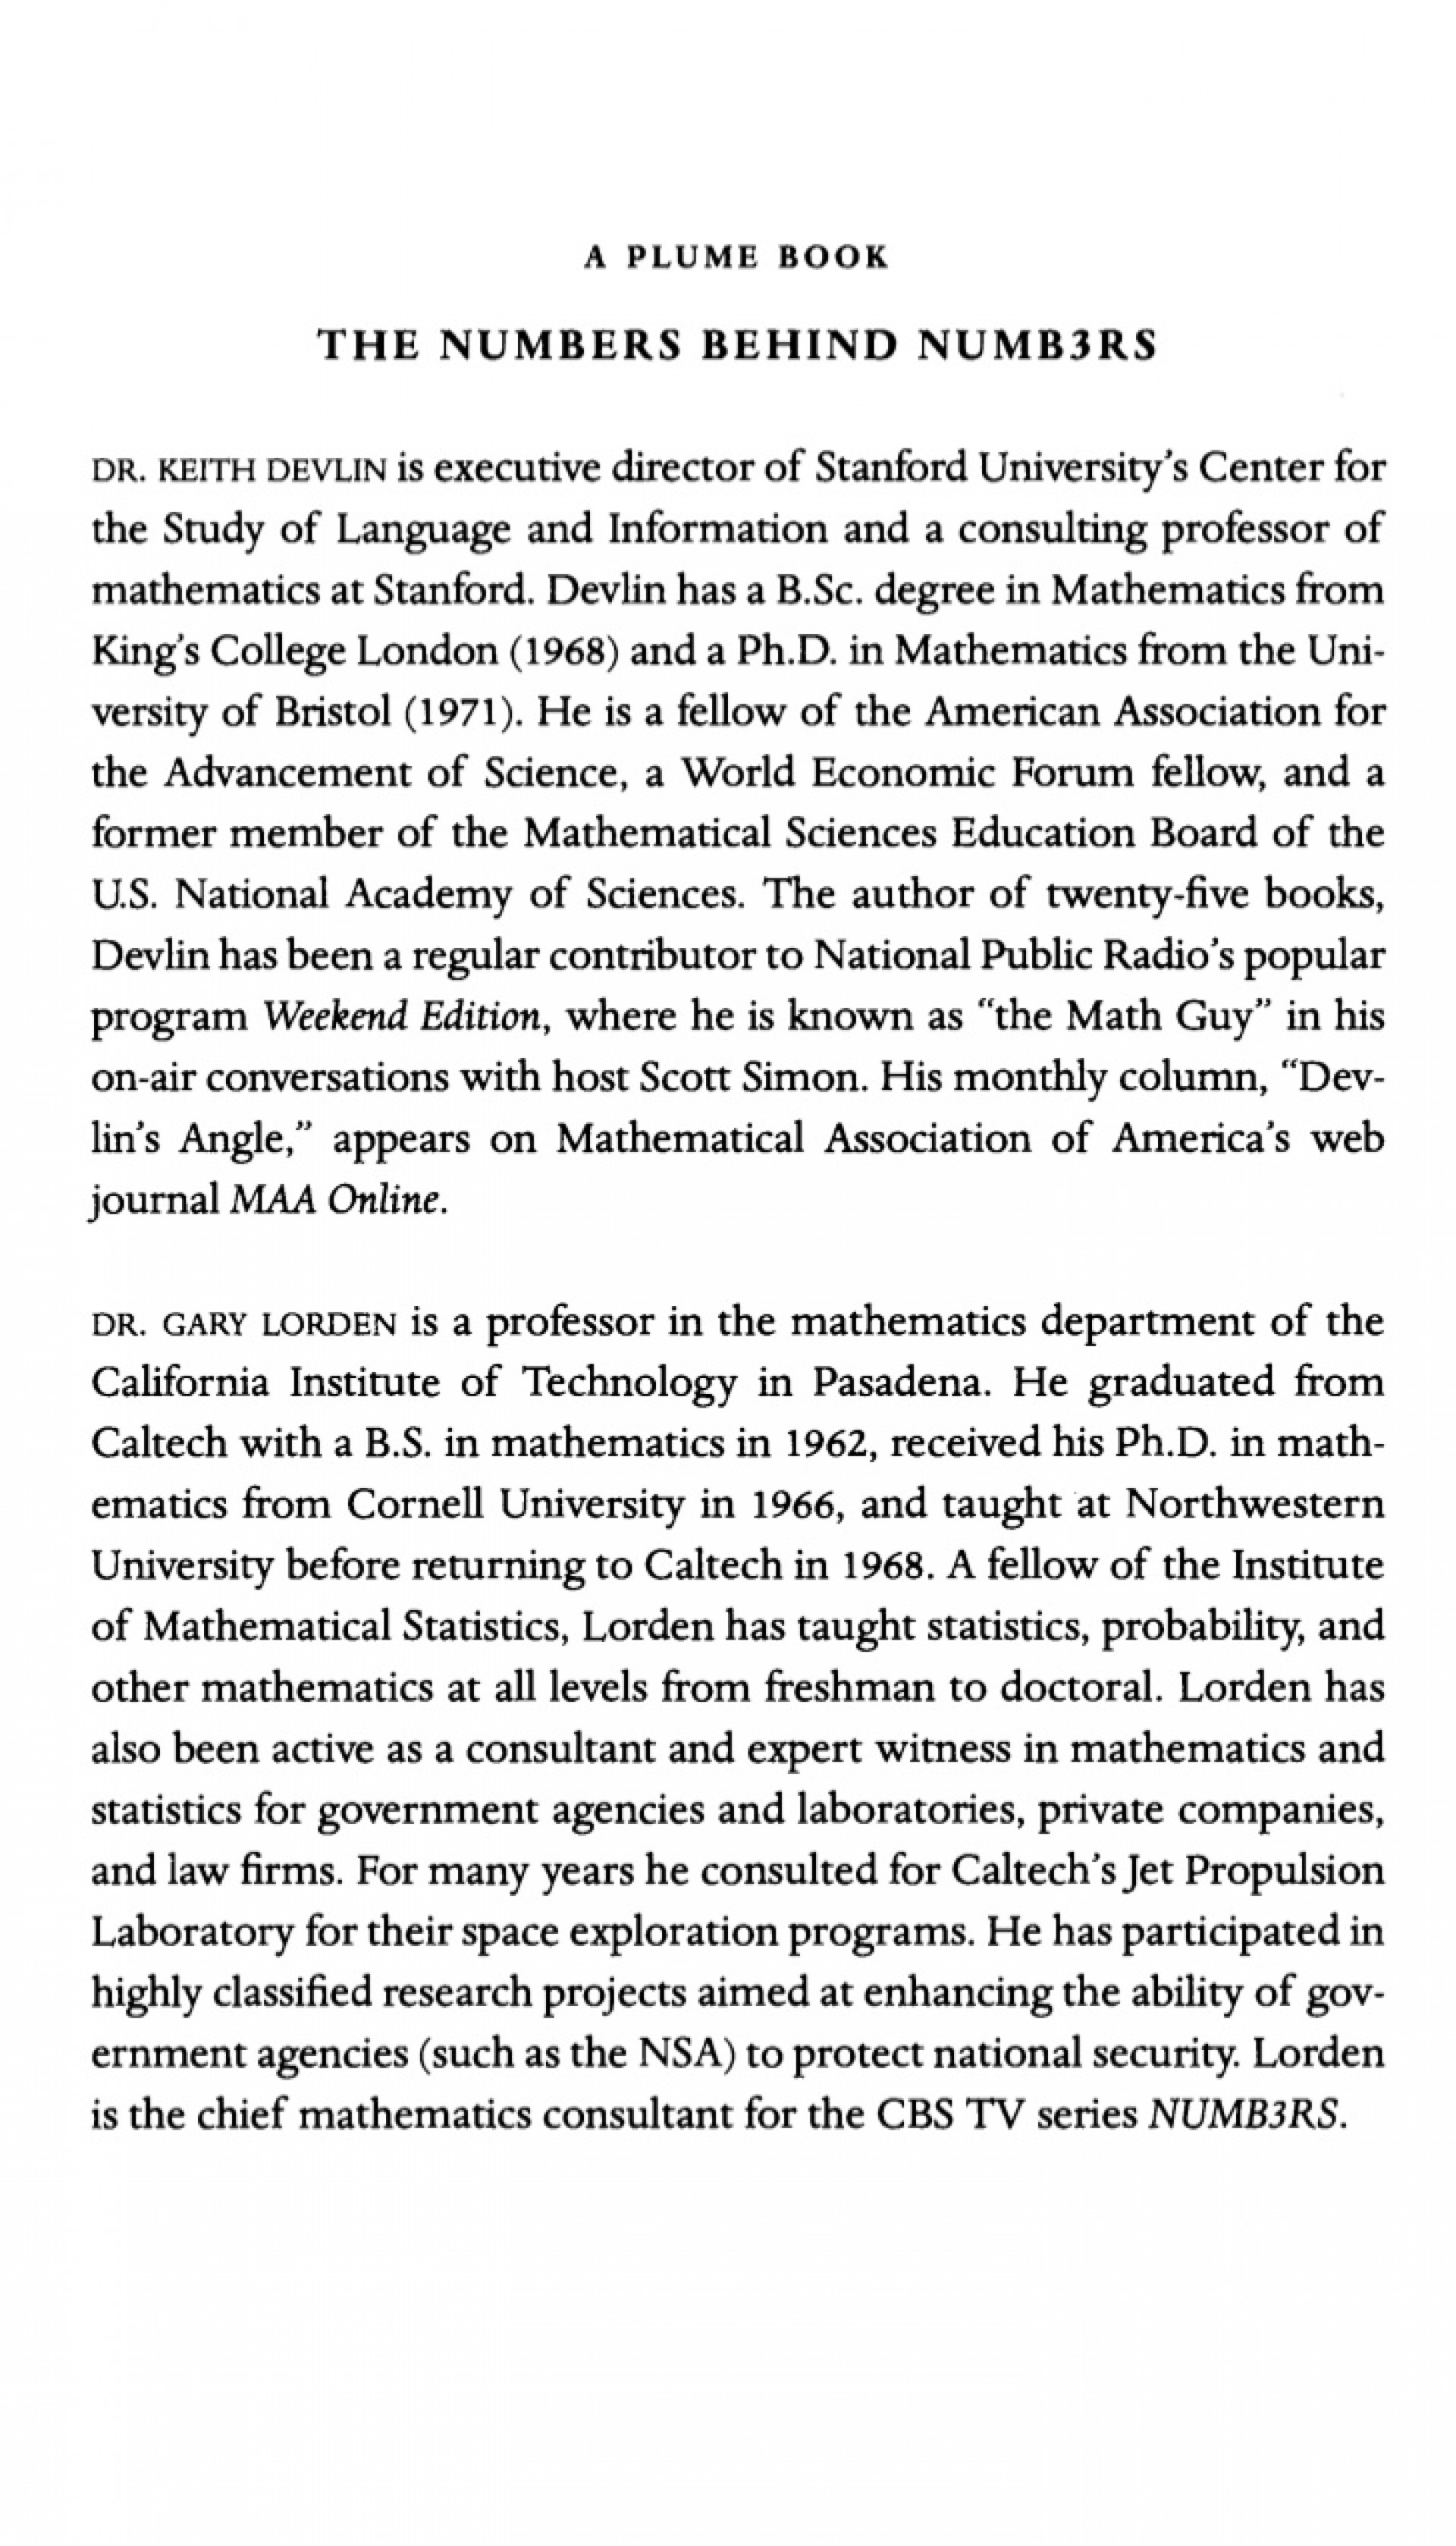 016 Essay Example My Mom The Numbers Behind Numb3 Rs Solving Crime With Mathematics Malestrom Astounding On Mother In Hindi For Class 5 Moment Of Success Narrative 1 1920